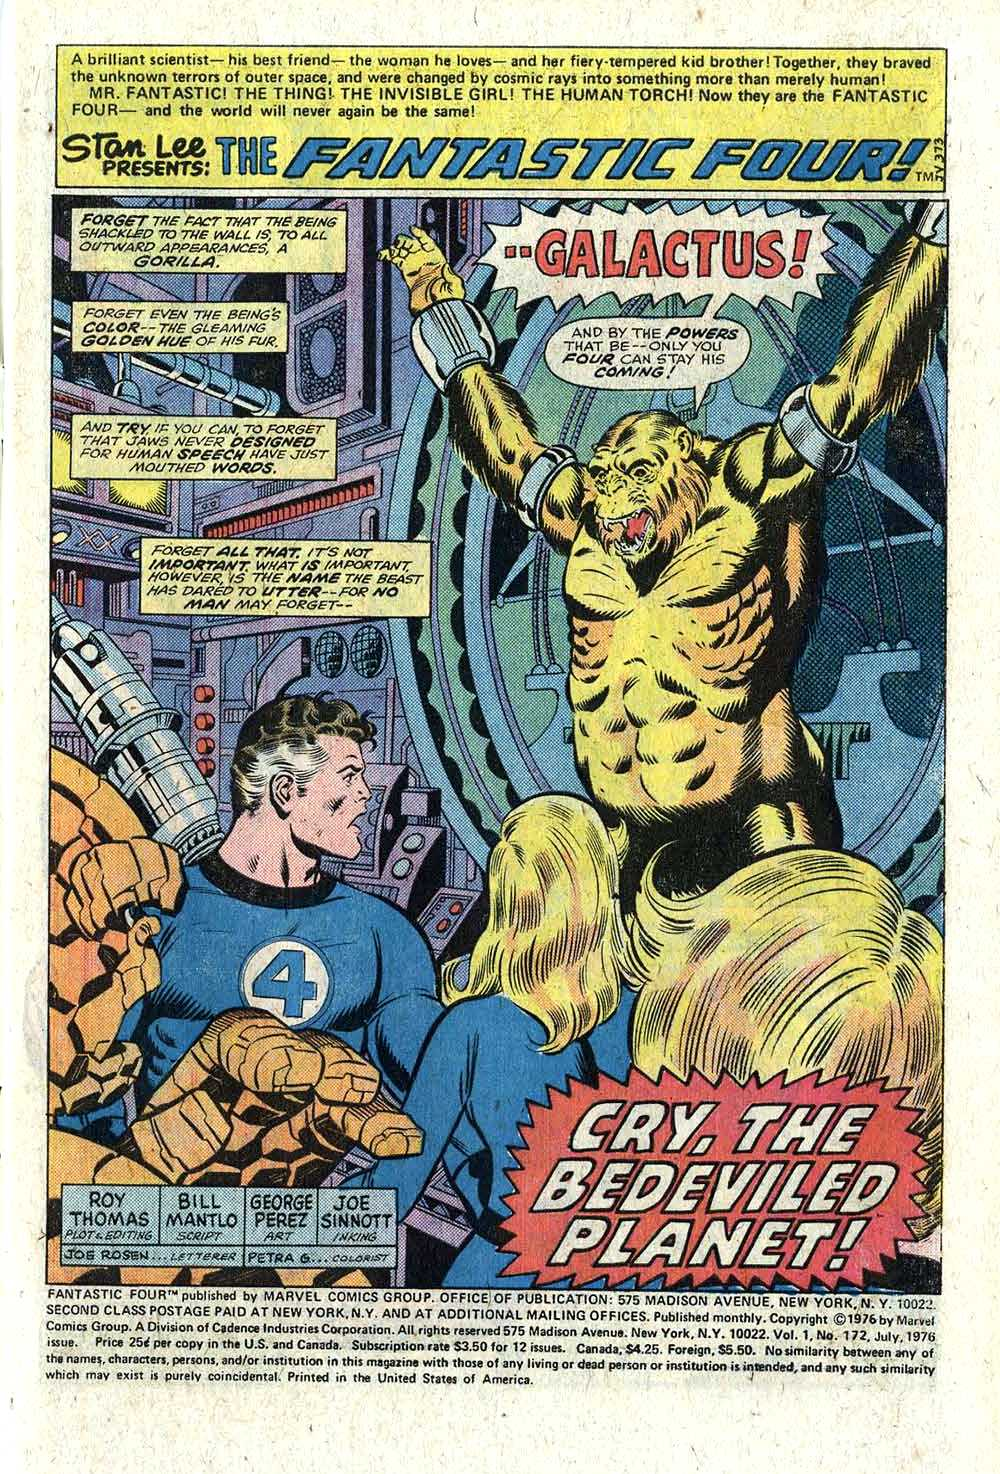 BHOC: FANTASTIC FOUR #172 – The Tom Brevoort Experience